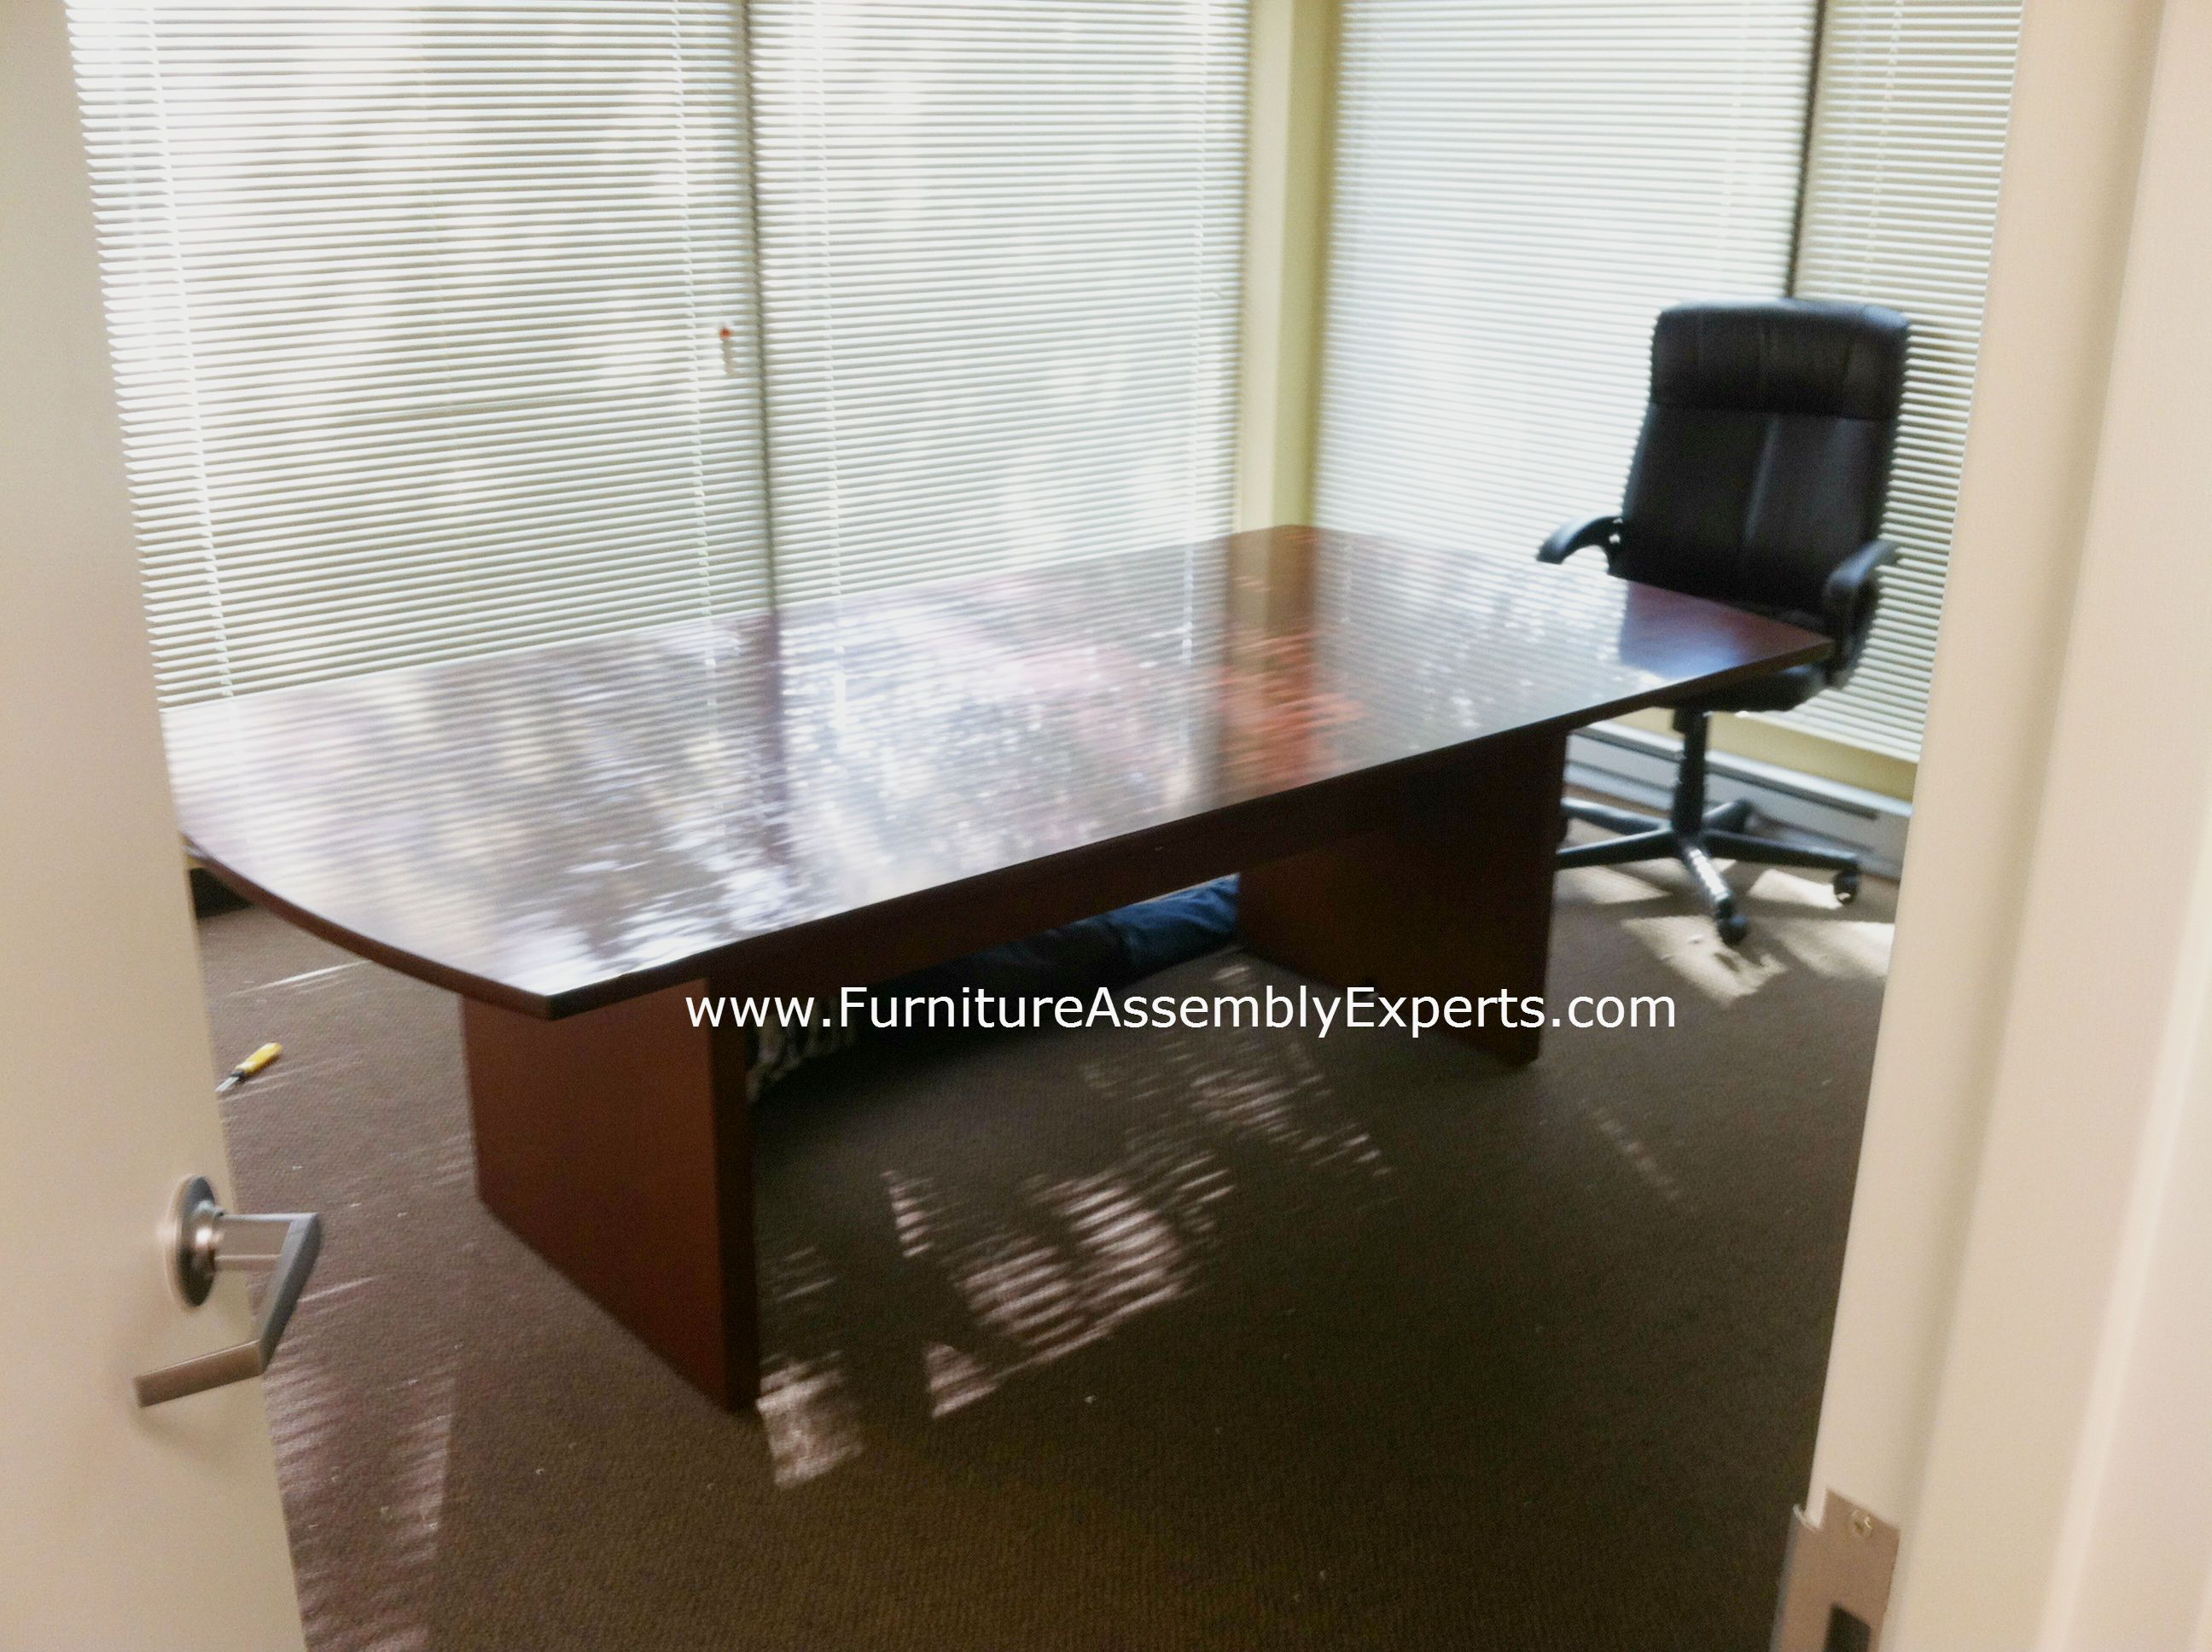 Office Depot Conference Table Embled In Baltimore Md By Furniture Embly Experts Llc Call 2407052263